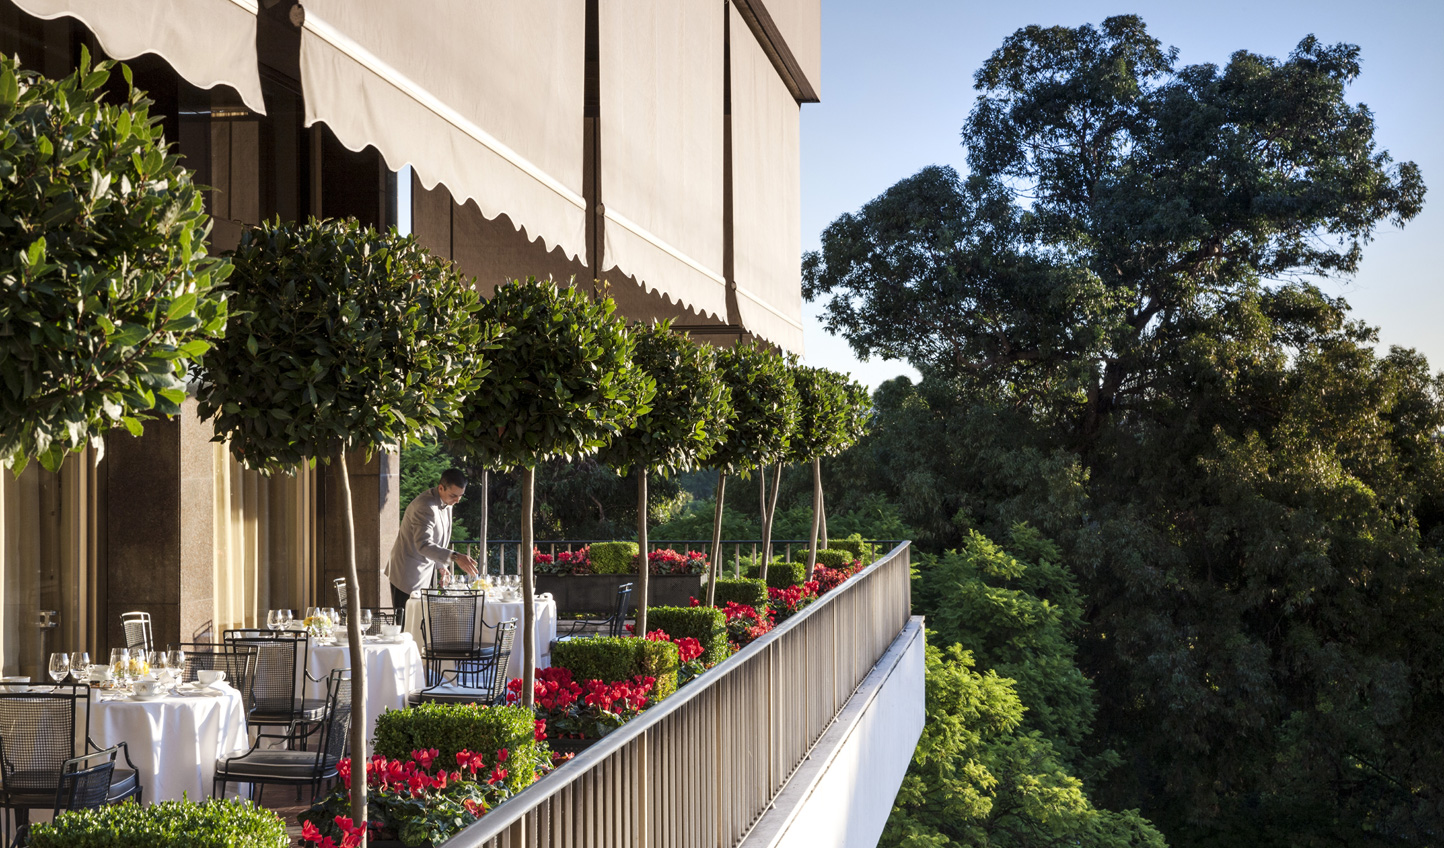 Enjoy beautiful views of the city over breakfast